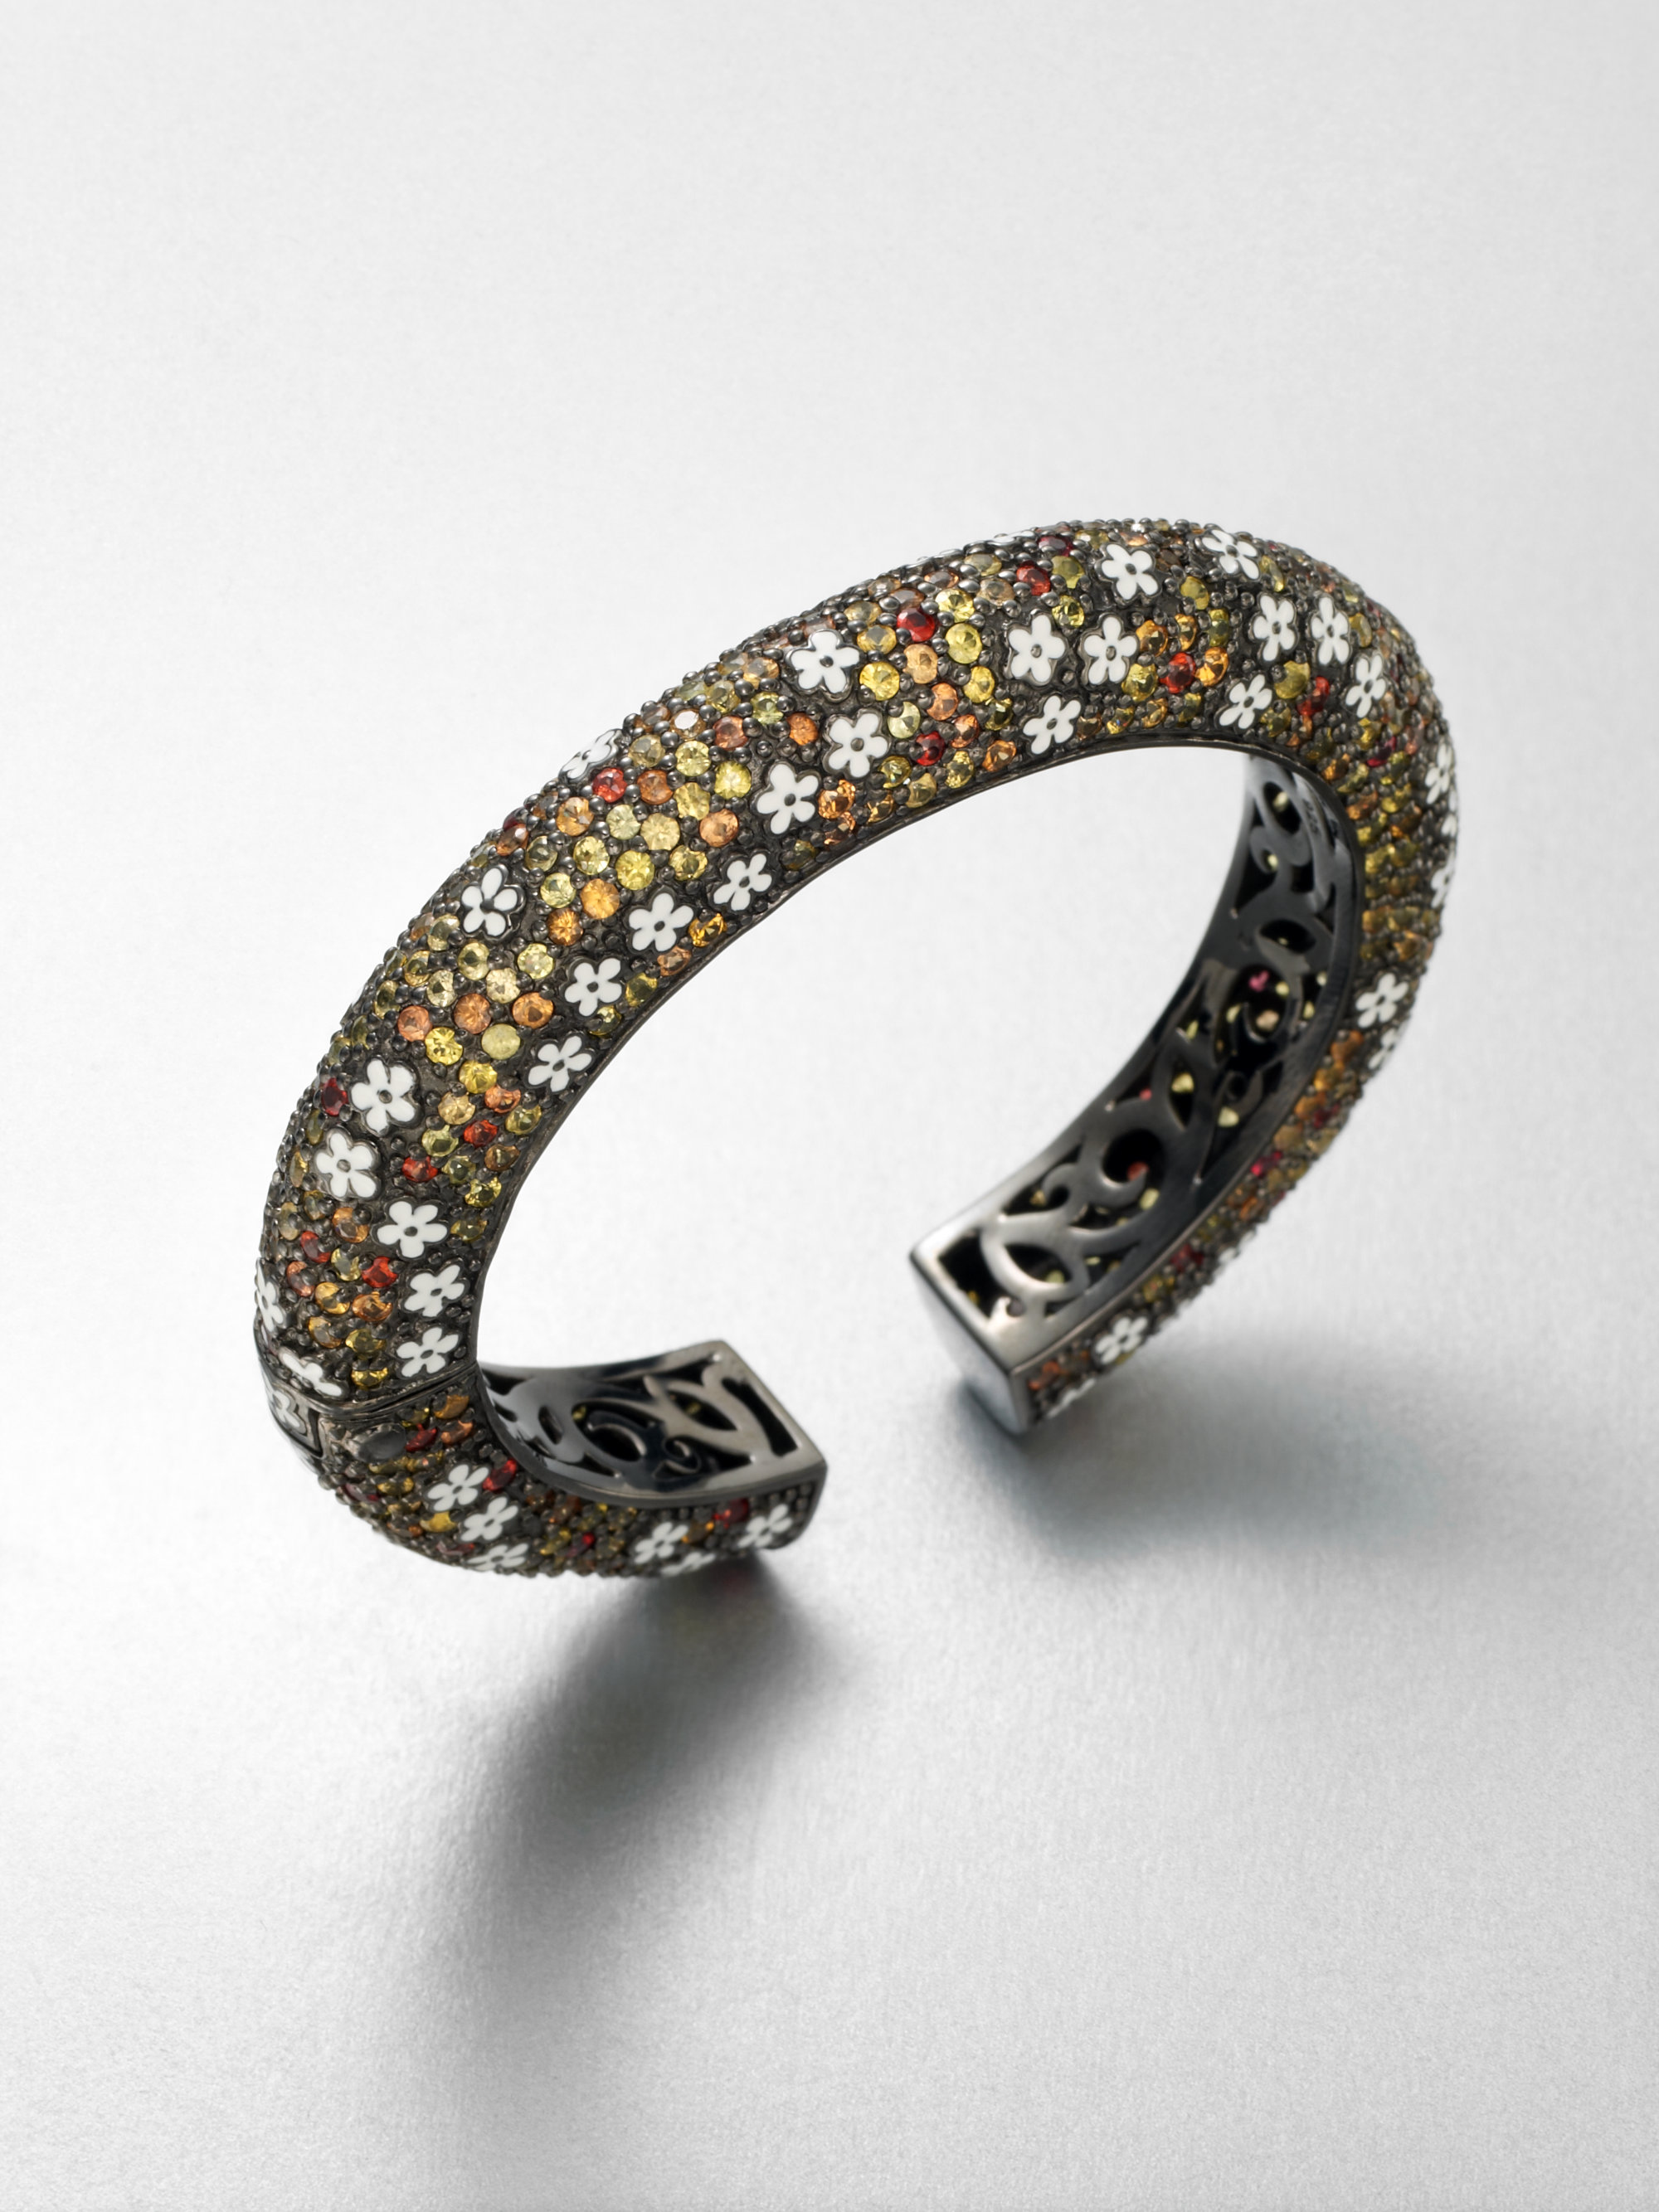 bracelet iii adjustable suzi a designs shop jewelry suzie sapphire slices past multicolored